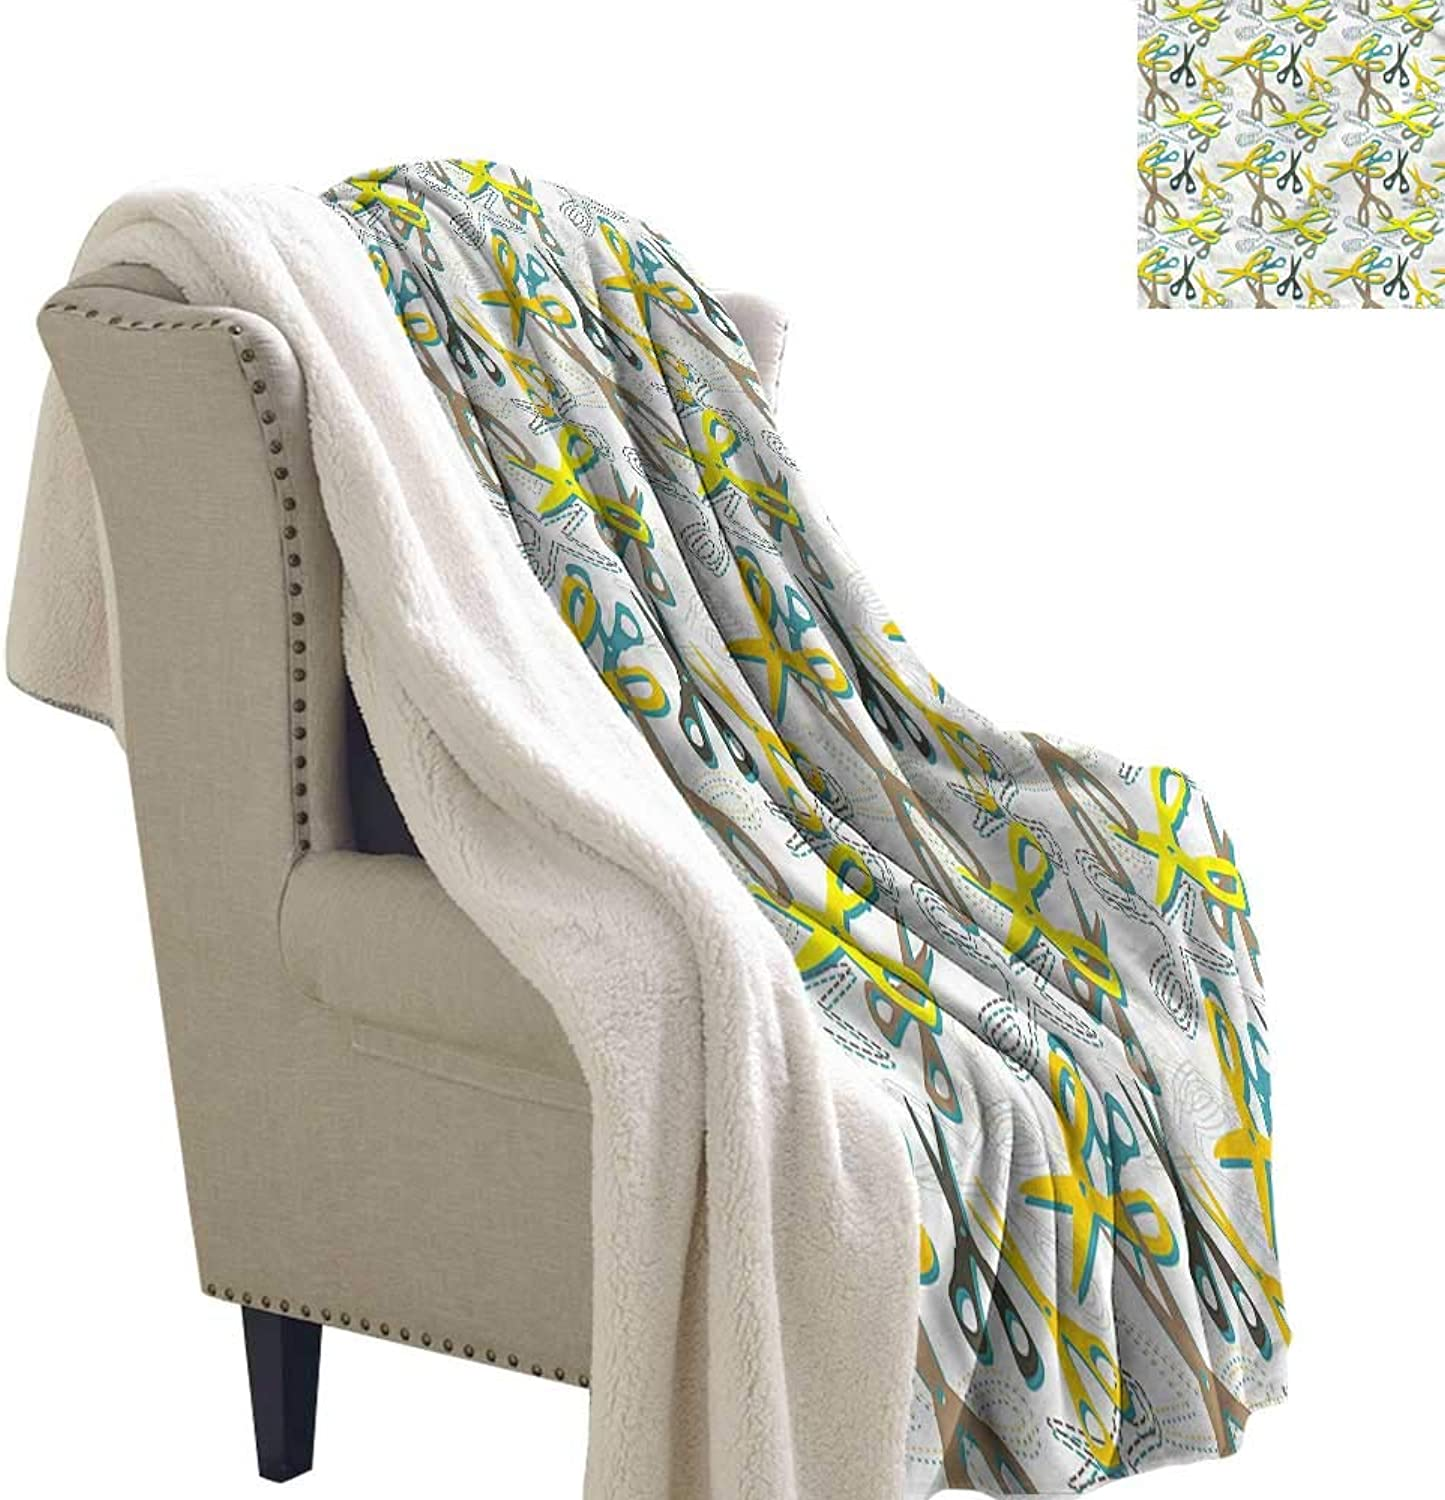 AndyTours Winter Quilt Retro colorful Scissors Tailoring Upgraded Thick Lazy Blanket Blanket W59 x L31